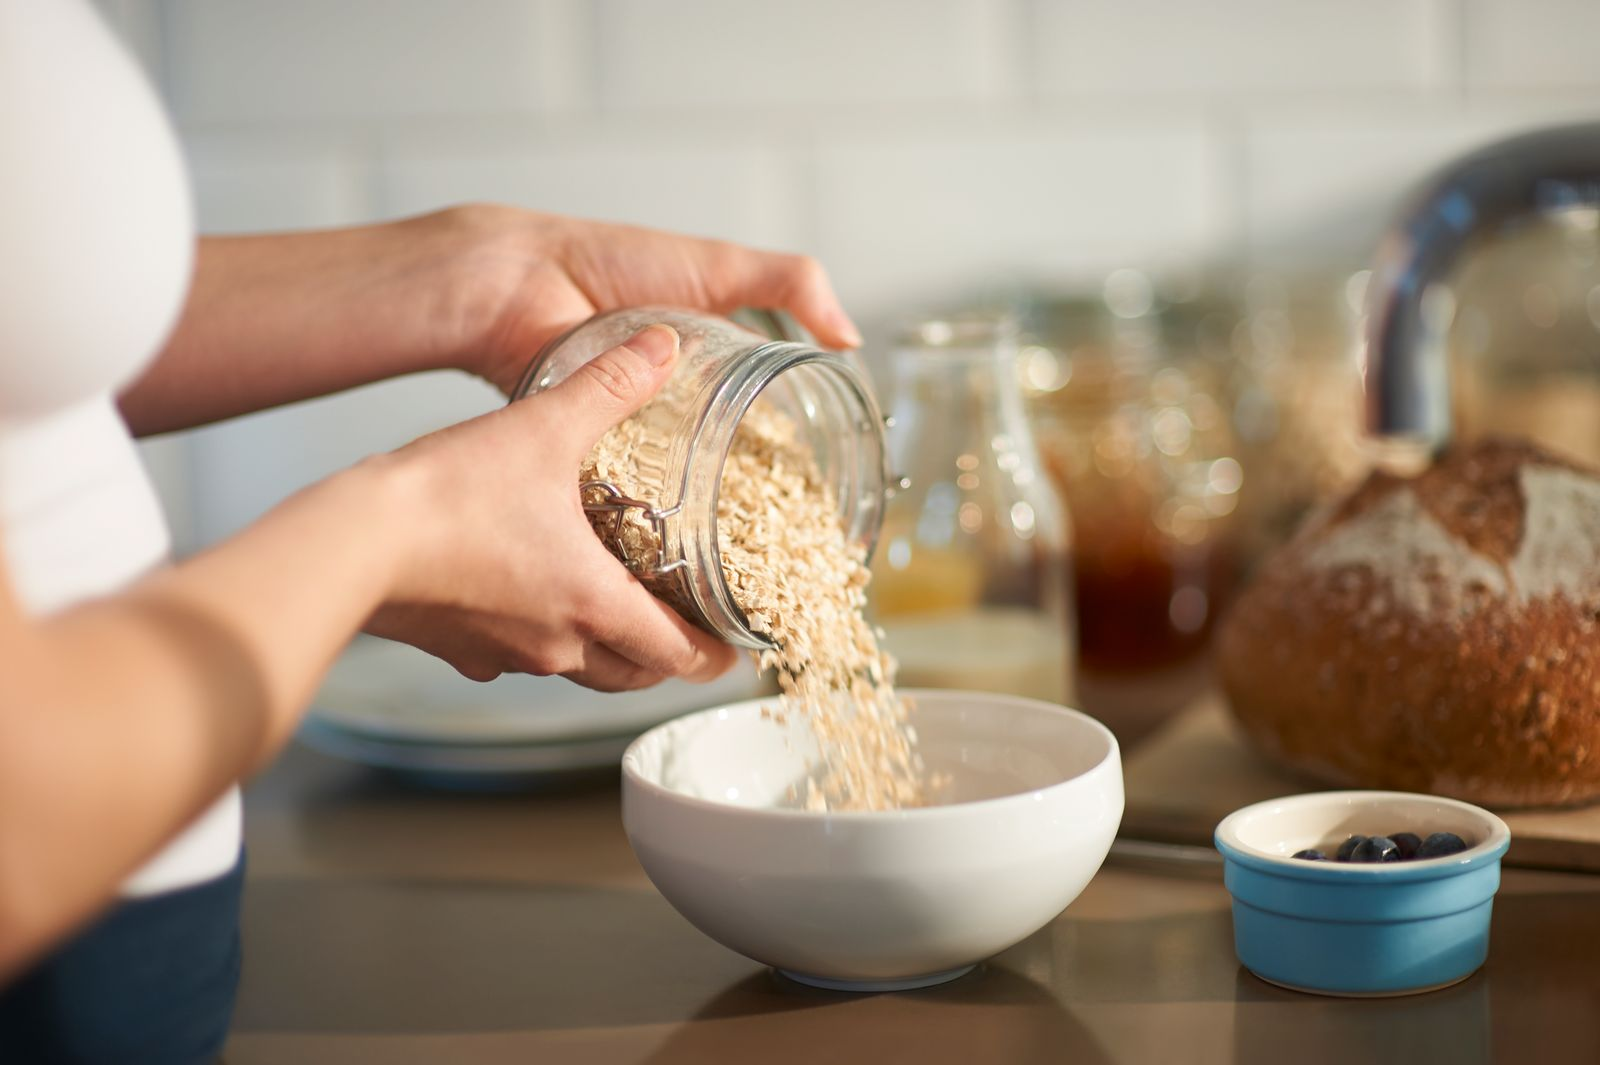 Woman pouring oats into bowl in kitchen, close up.